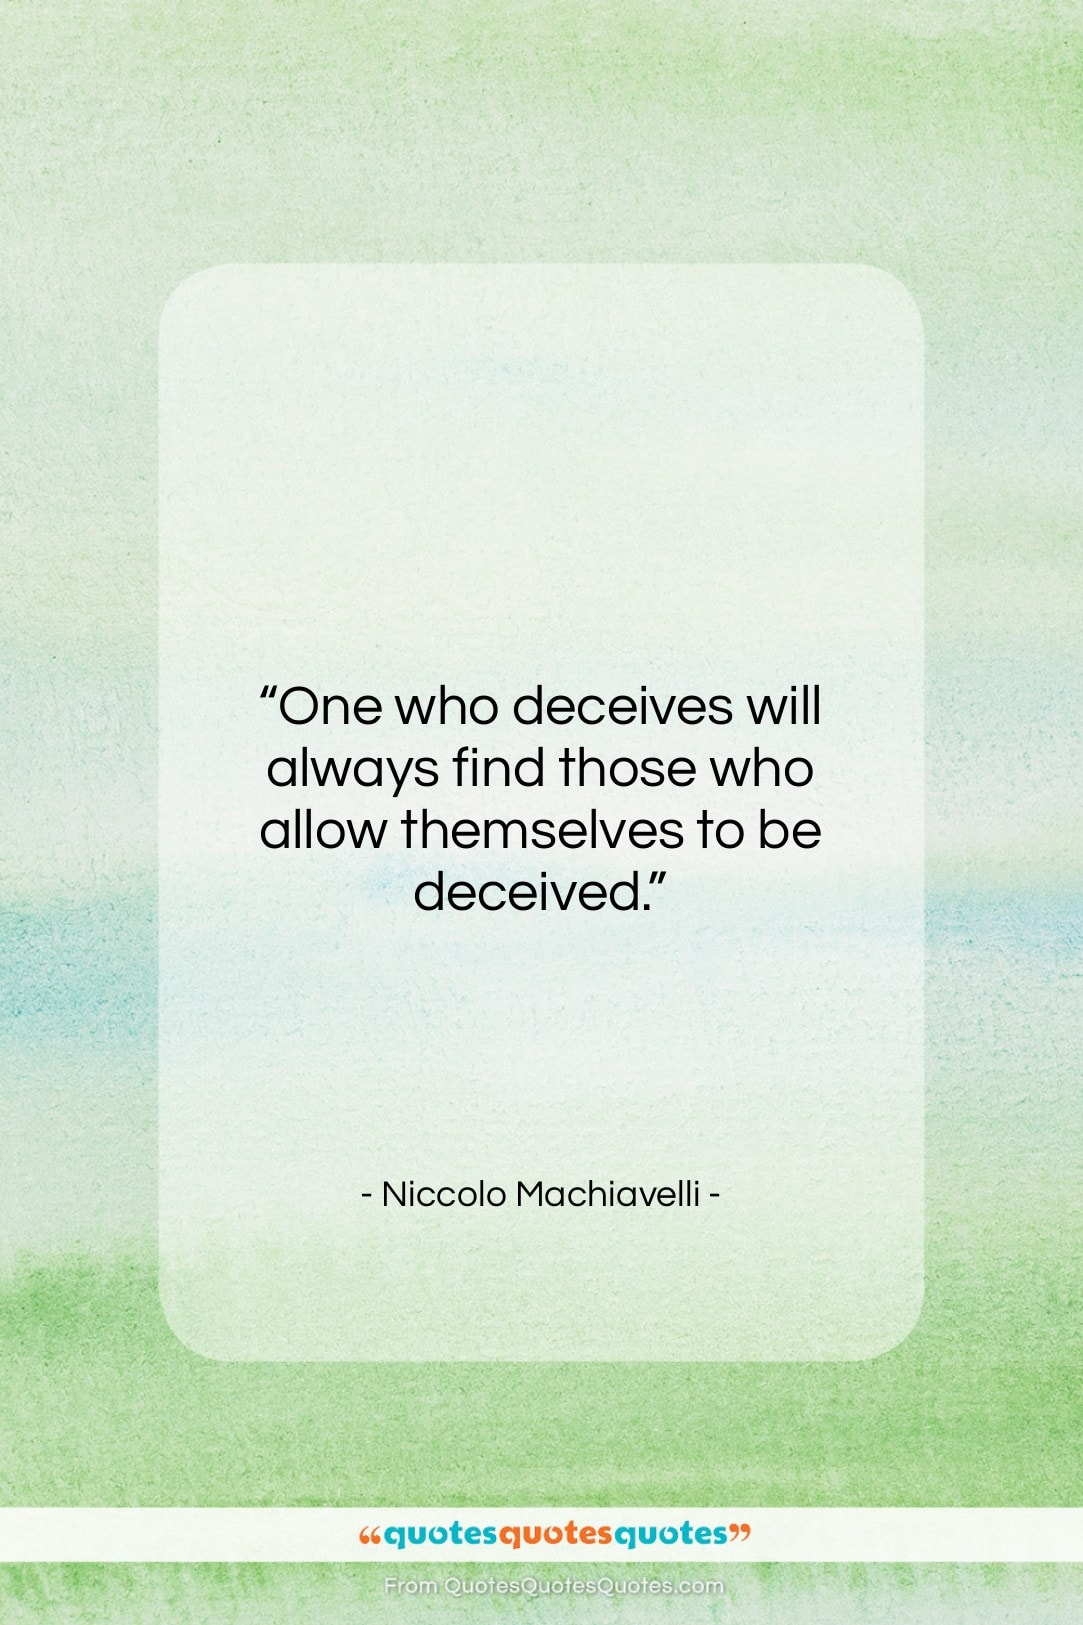 """Niccolo Machiavelli quote: """"One who deceives will always find those…""""- at QuotesQuotesQuotes.com"""